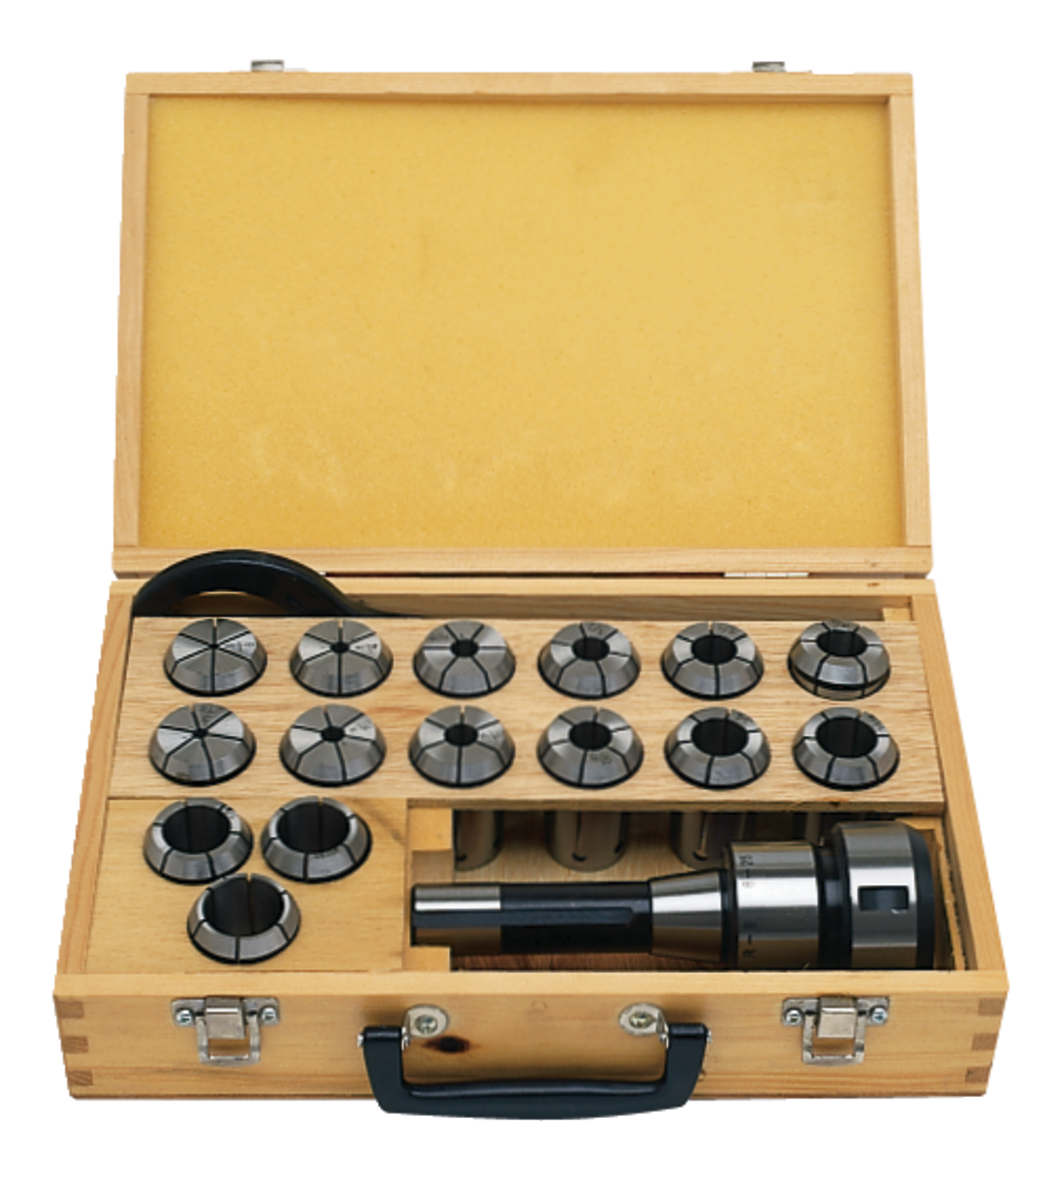 CCS-1, R-8 Chuck and Collet Set